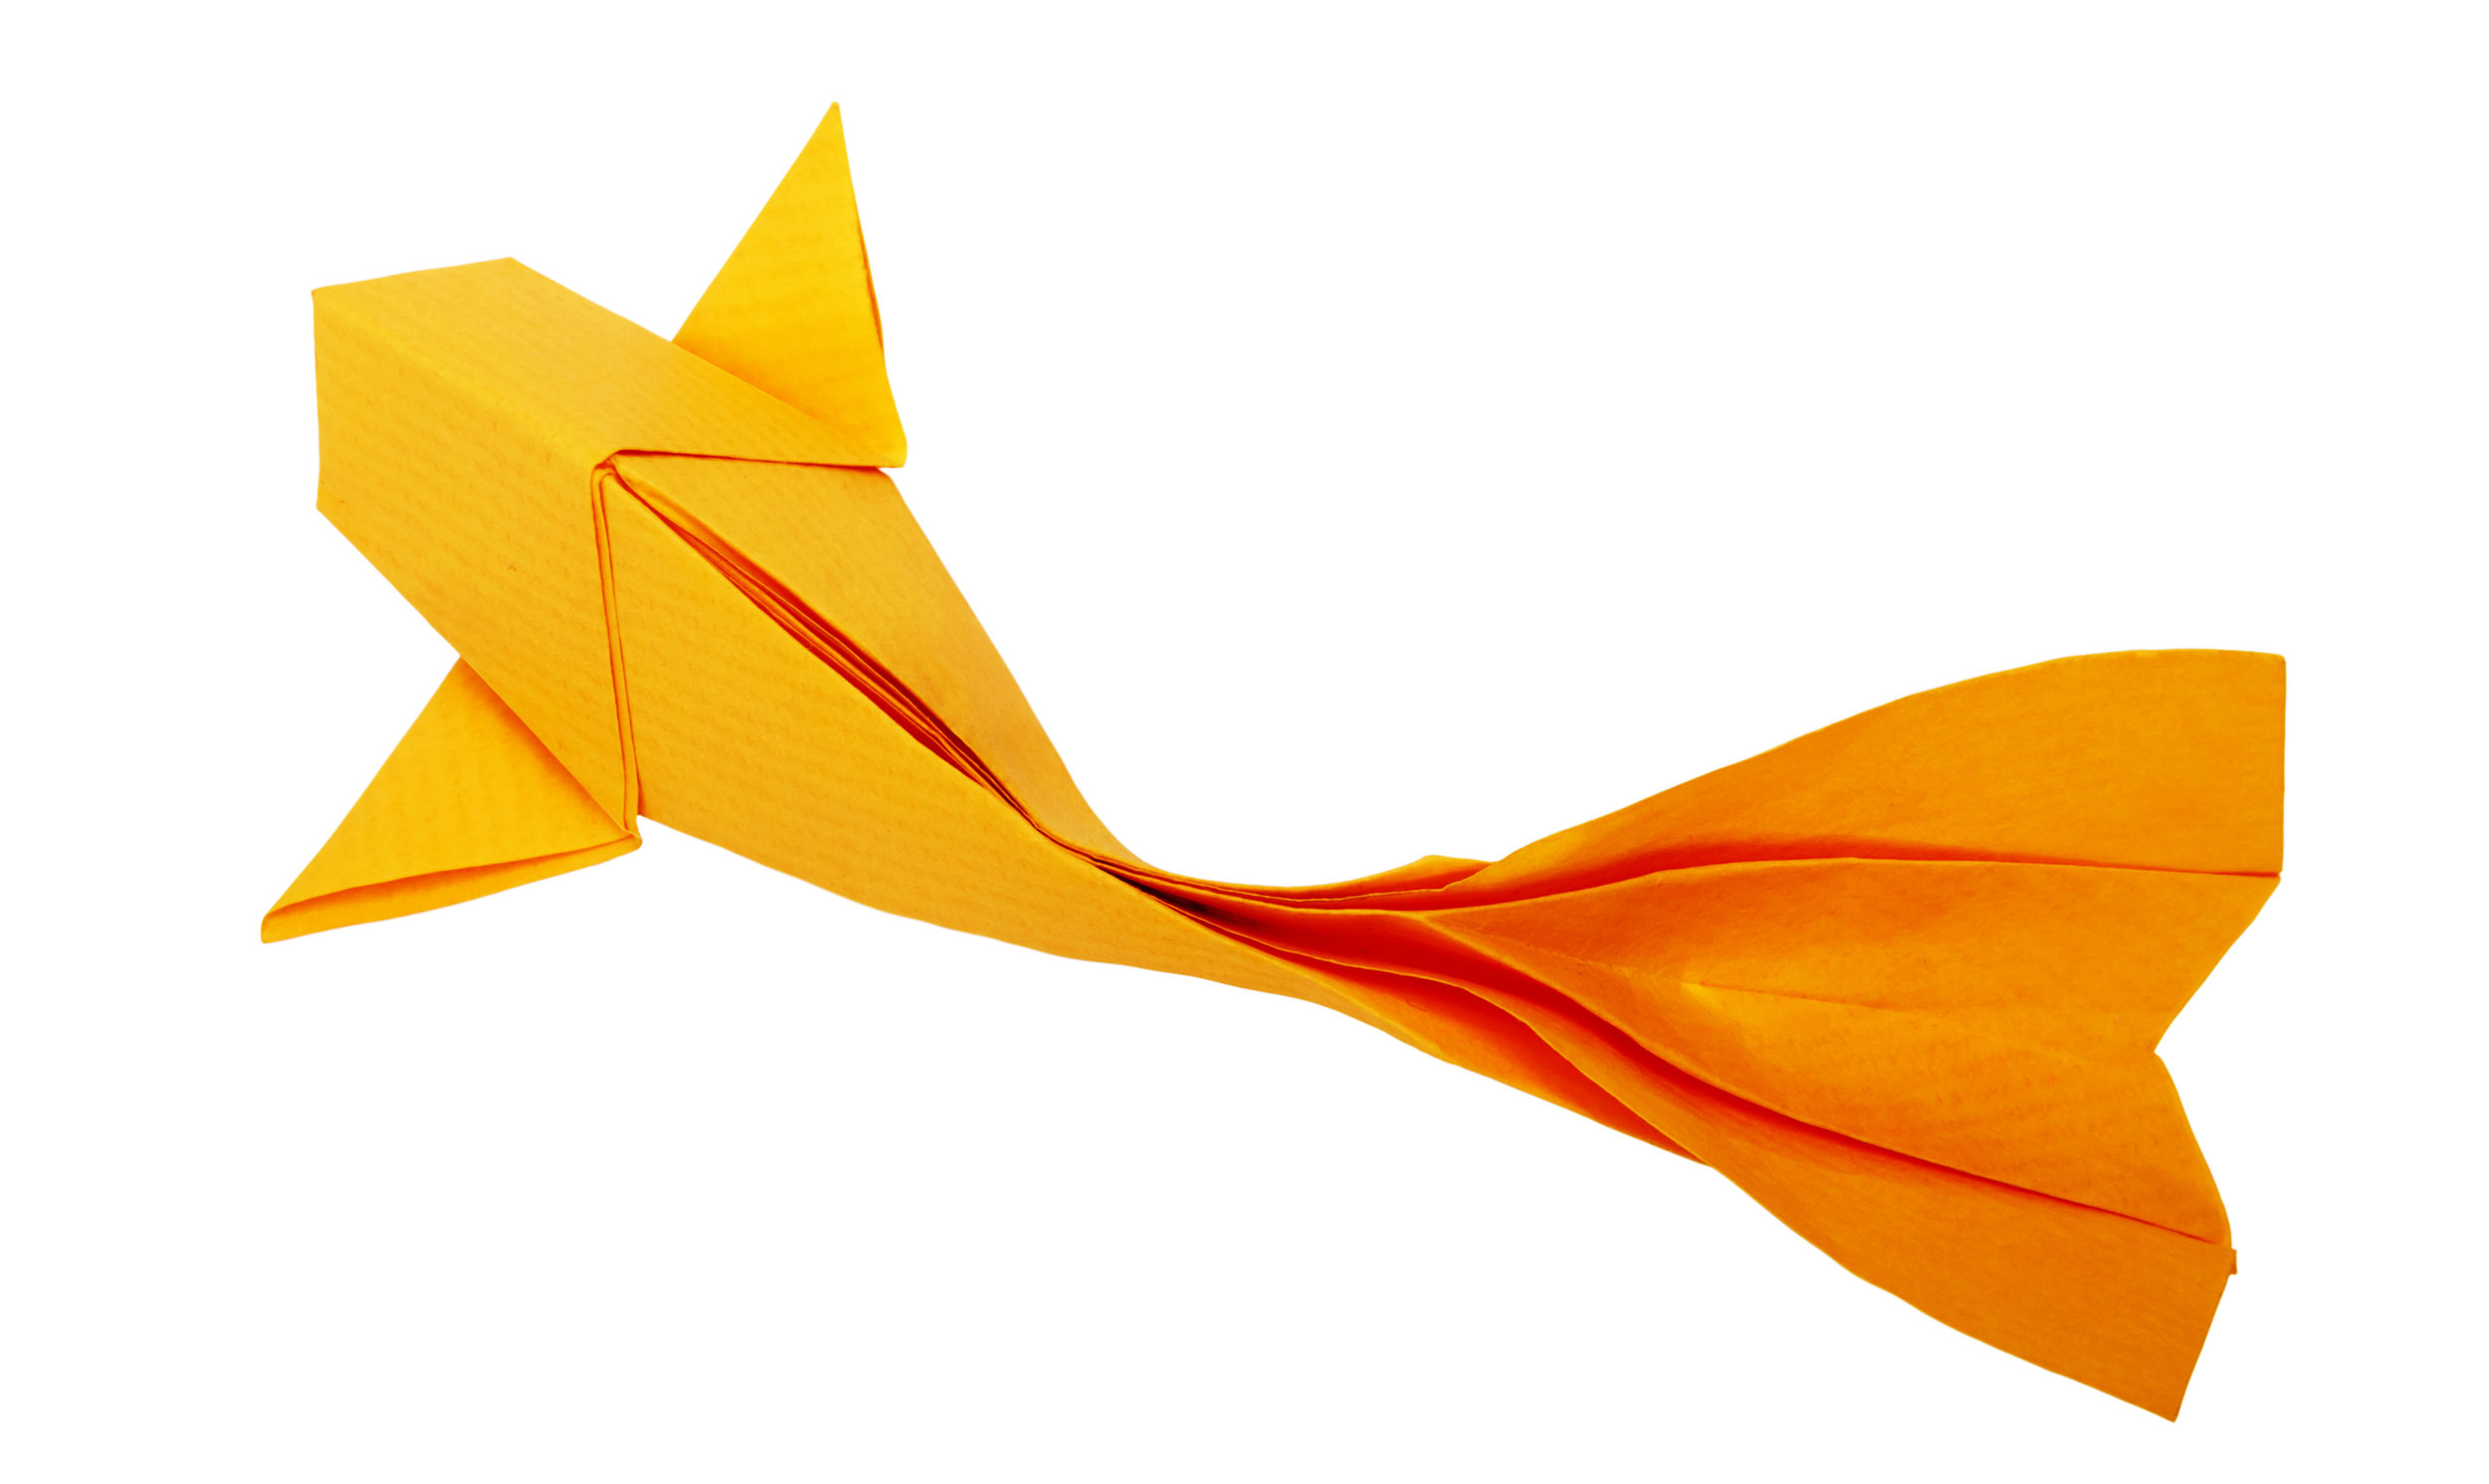 Origami fish immigrant report AS.jpeg